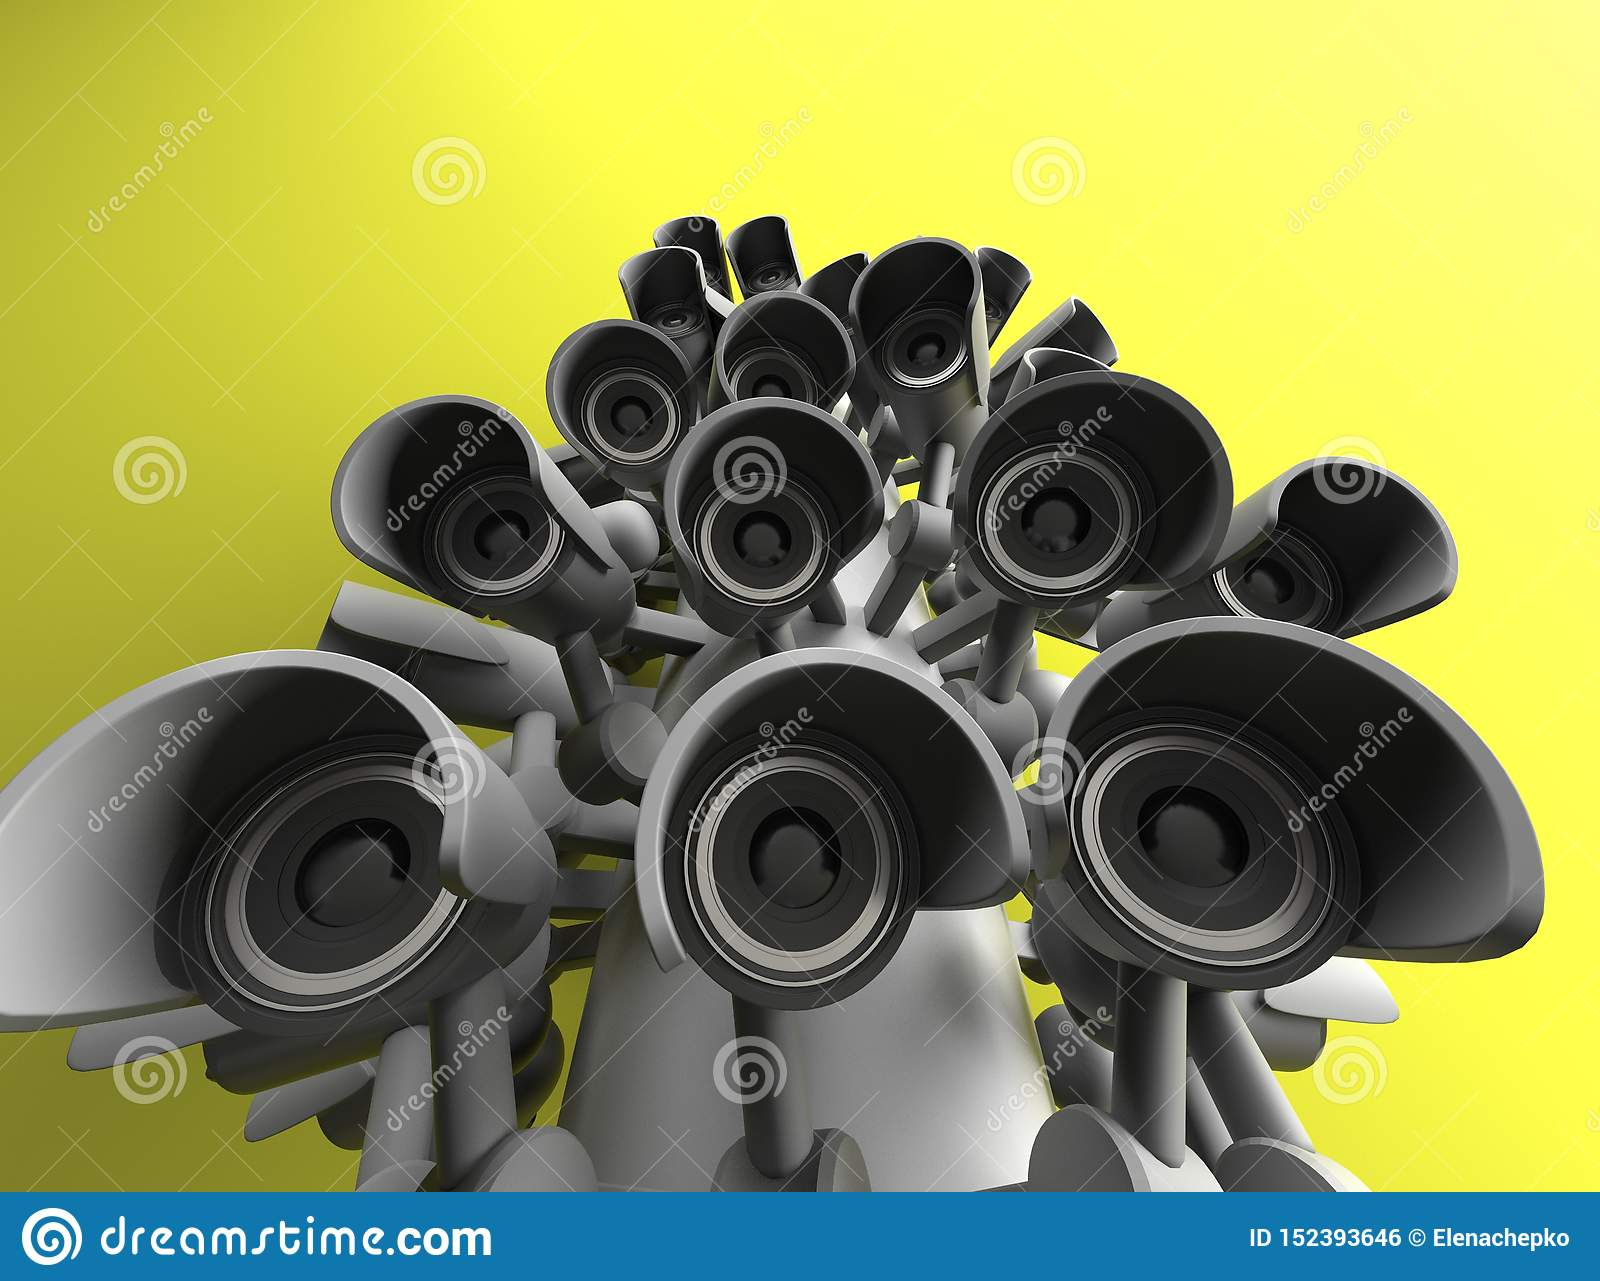 Security camera stock photo download image now istock.